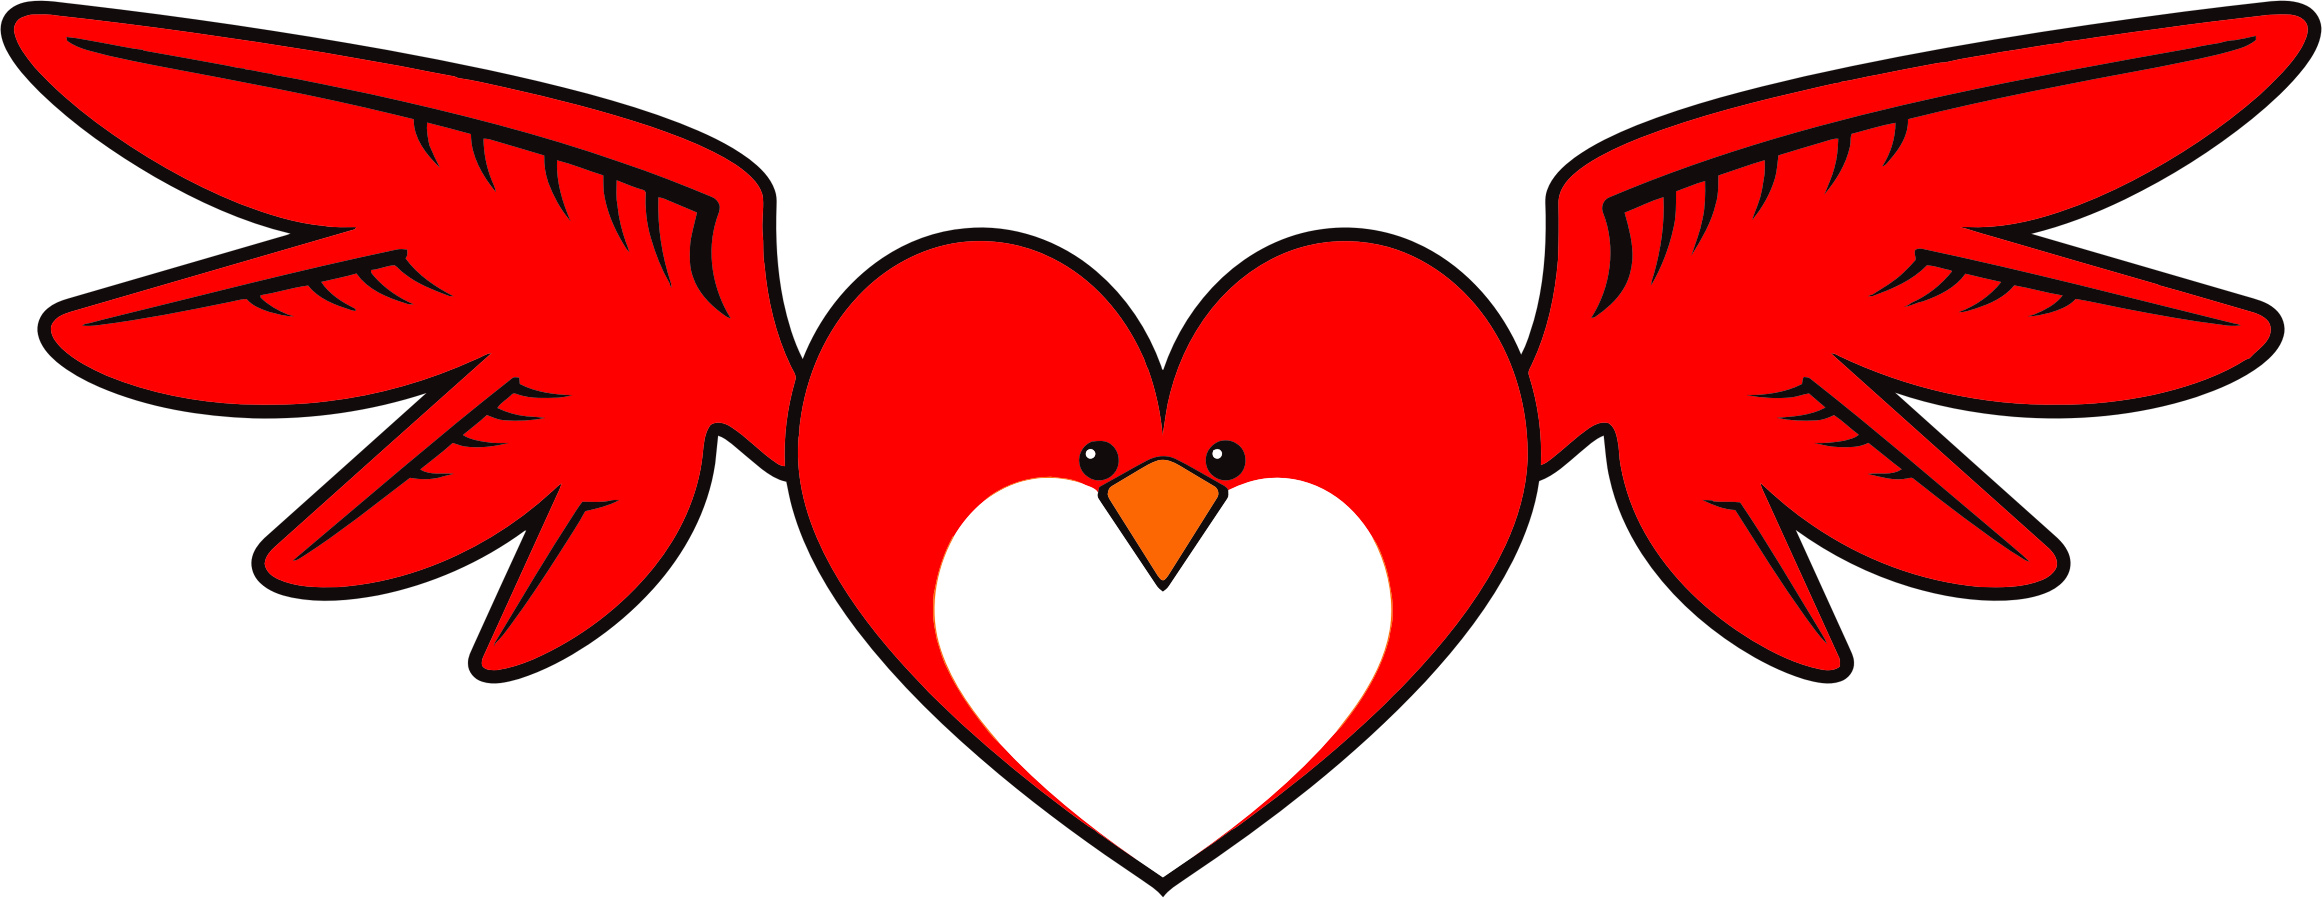 Heart and bird clipart vector royalty free download Clipart - Heart Bird vector royalty free download